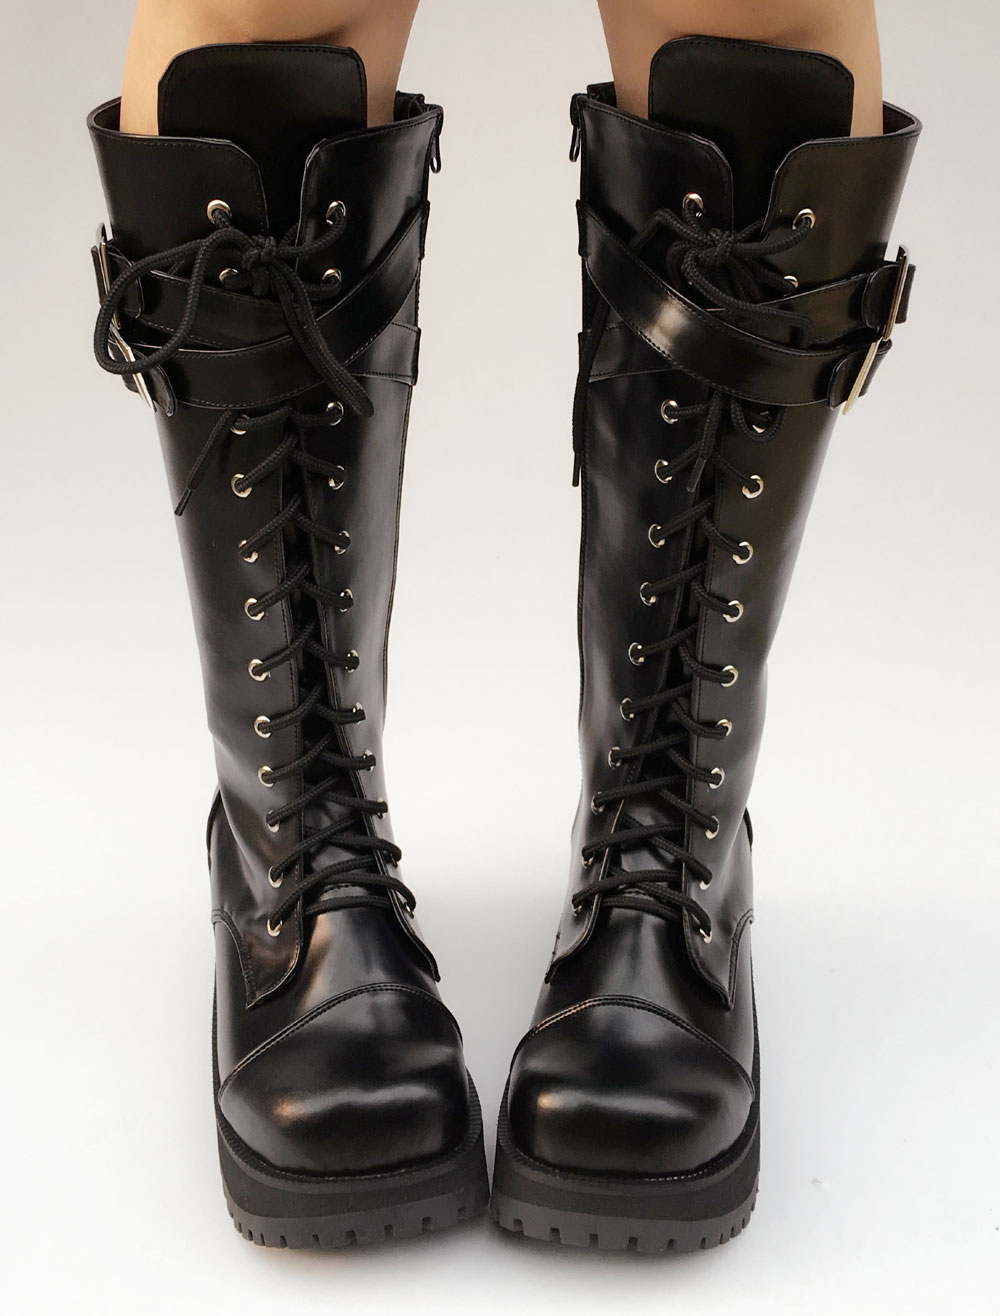 Black Lolita Boots Platform Chunky Heel Lace Up Cross Front Buckle Round Toe Lolita Short Boots